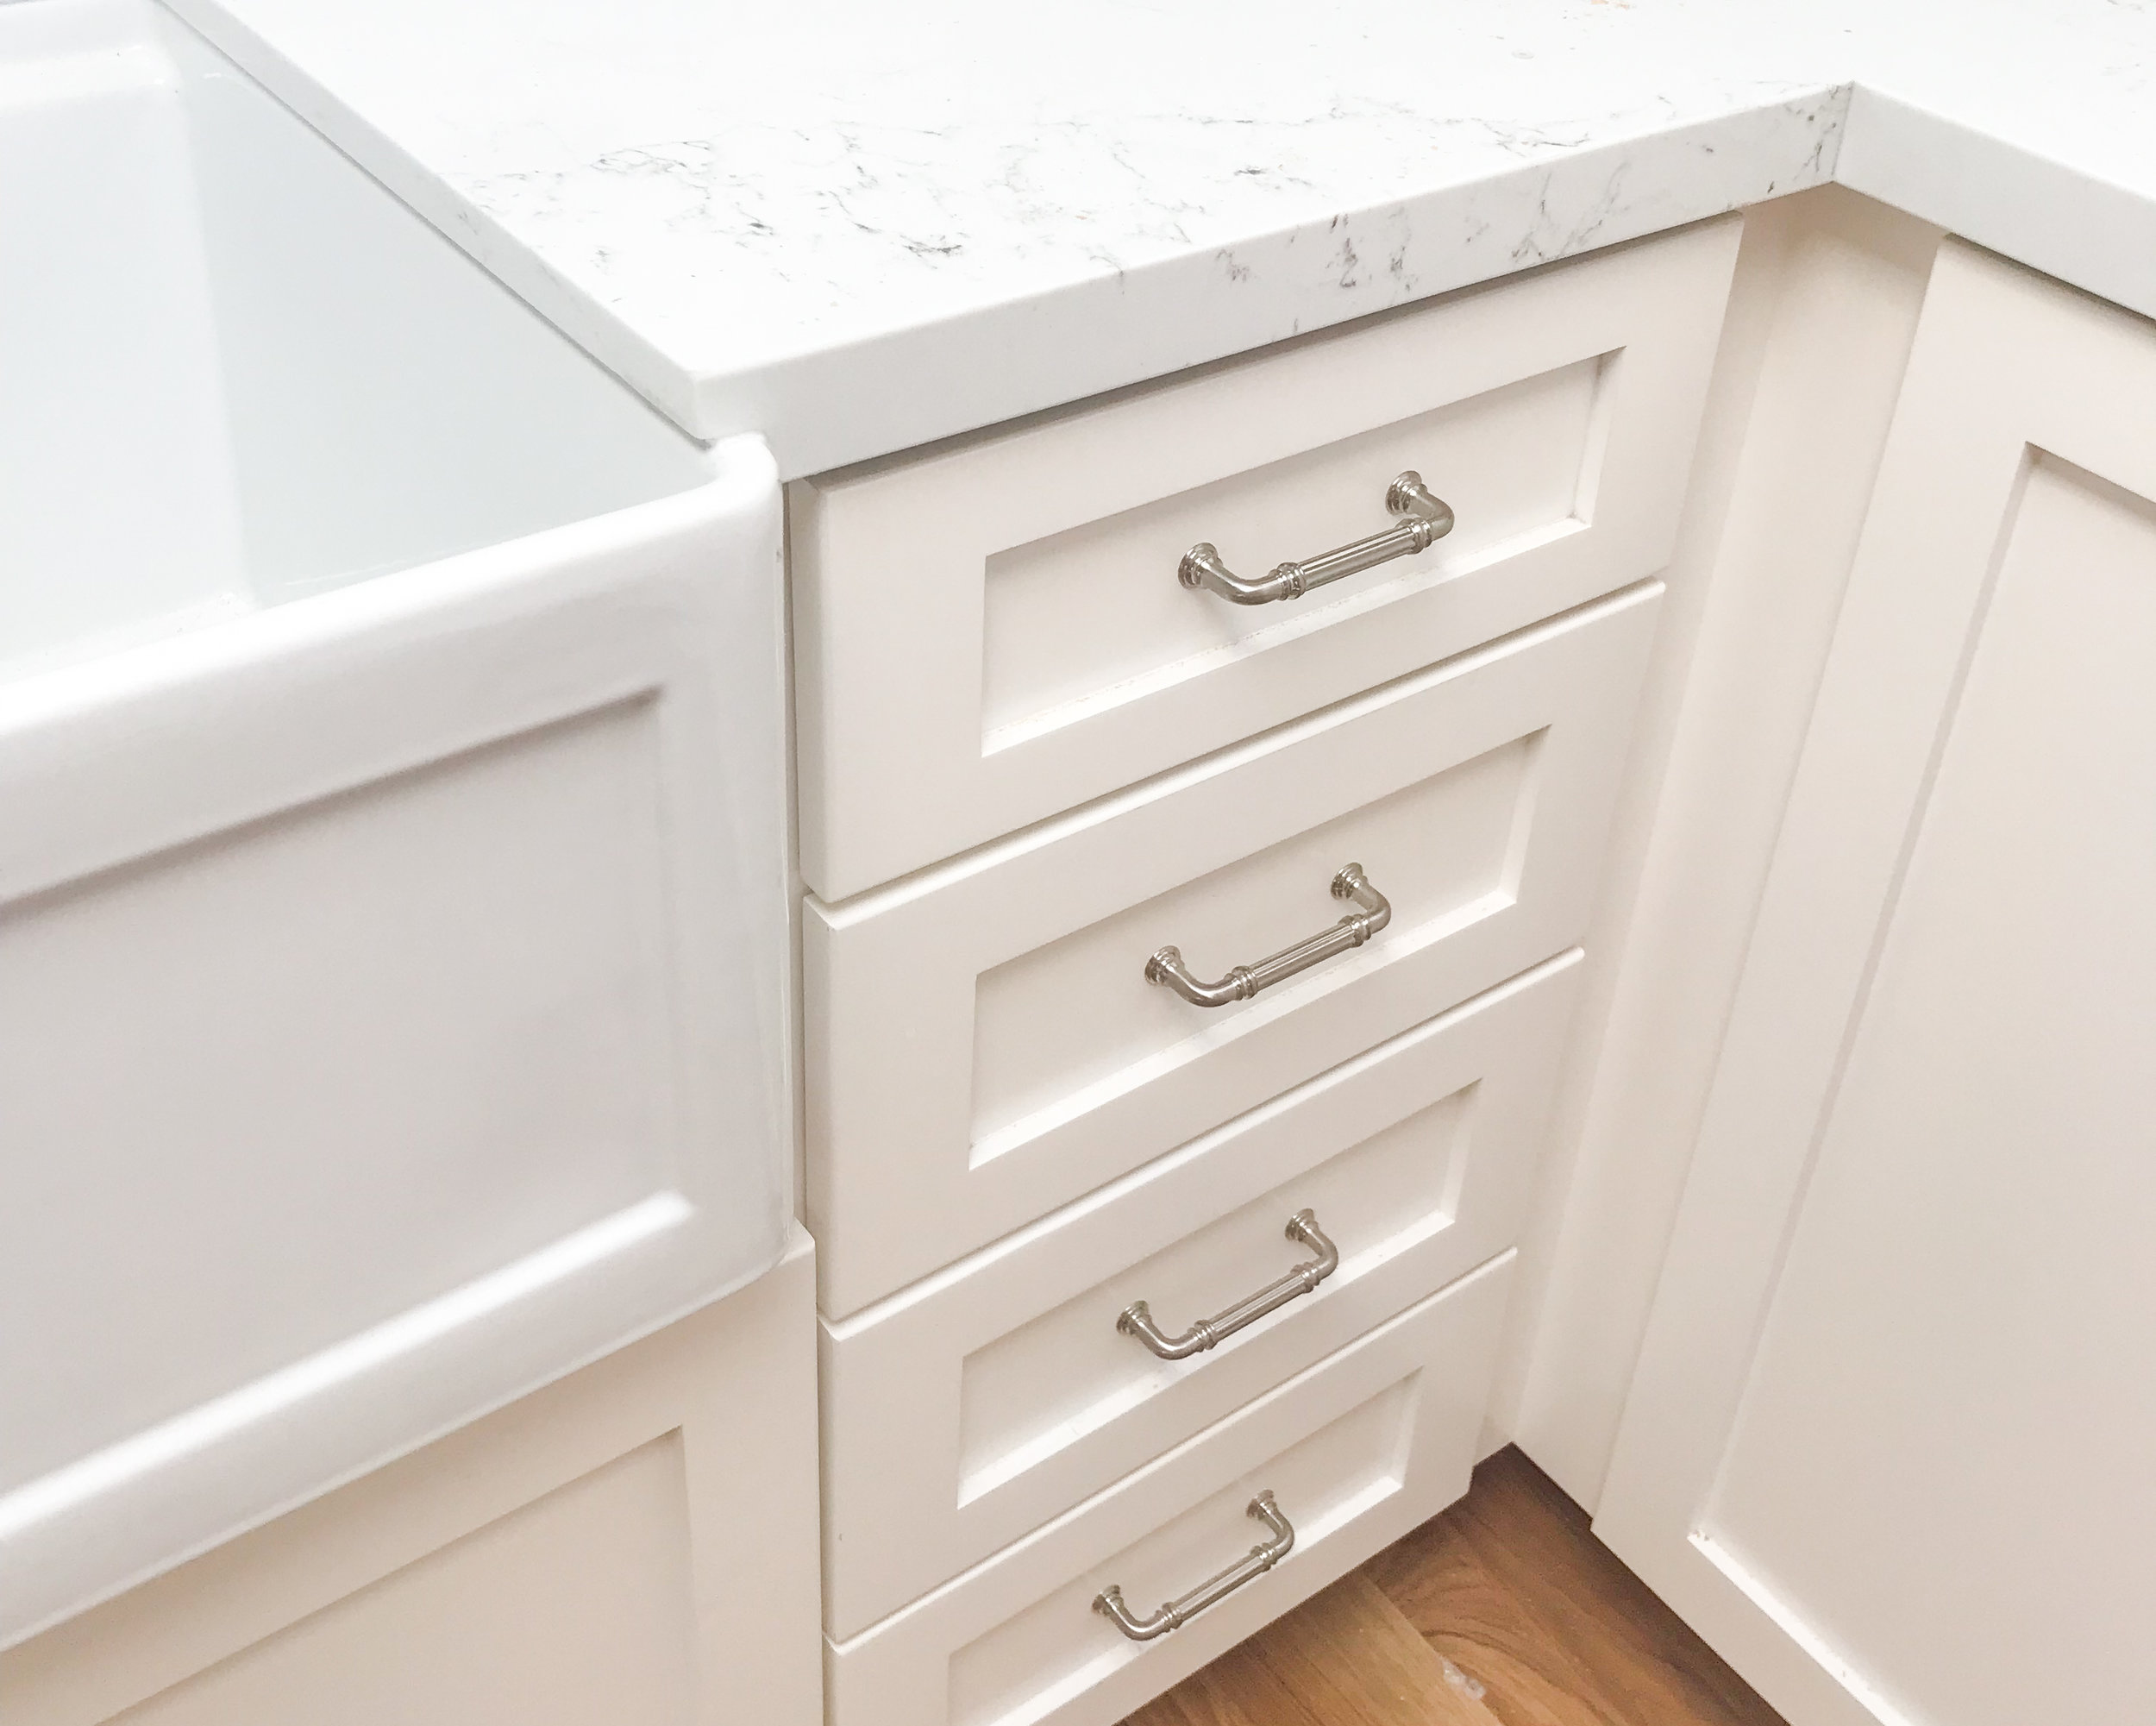 Plan ahead and talk to your contractor about the countertop detail at your apron front sink!